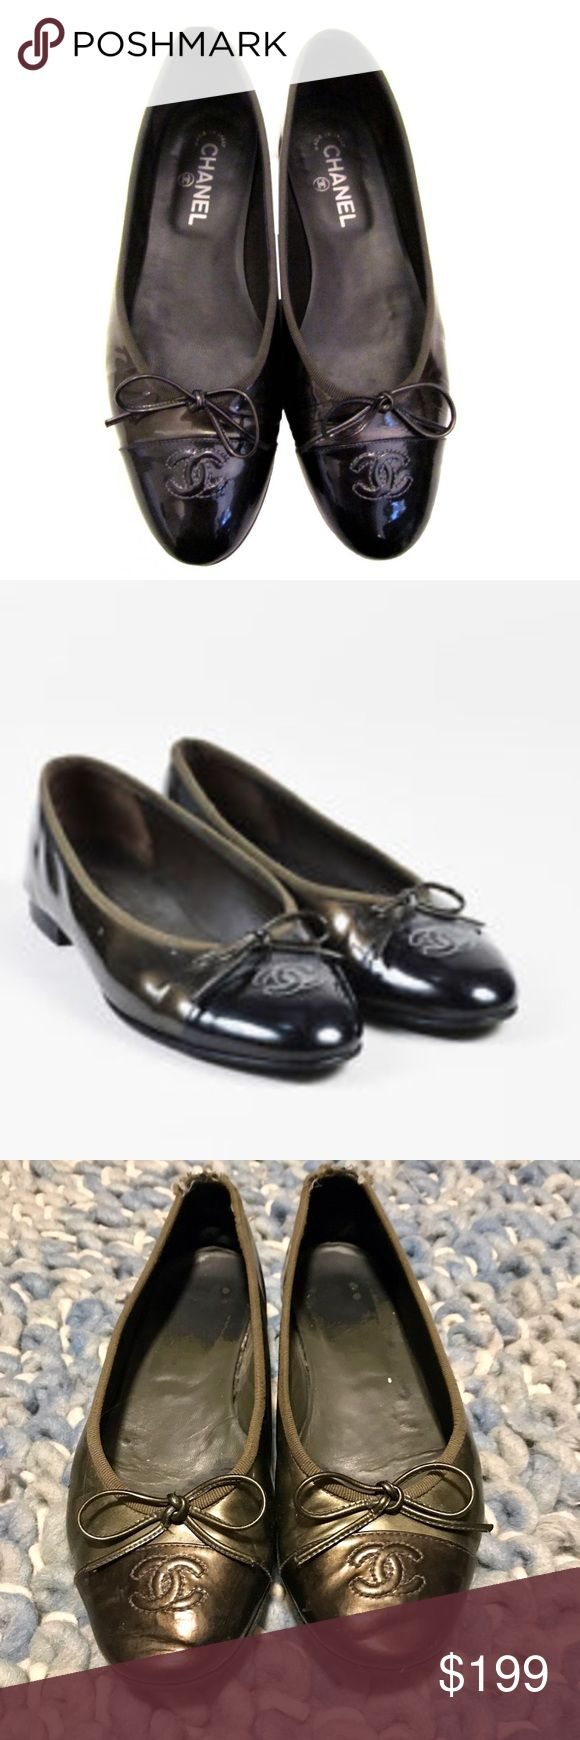 Chanel pearlized grey 2 tone ballet flats Chanel pearlized grey 2 tone ballet flats. Pre loved. Wear at heel can be fixed and soles have been replaced with high quality rubber for longevity. Bought in London, UK CHANEL Shoes Flats & Loafers